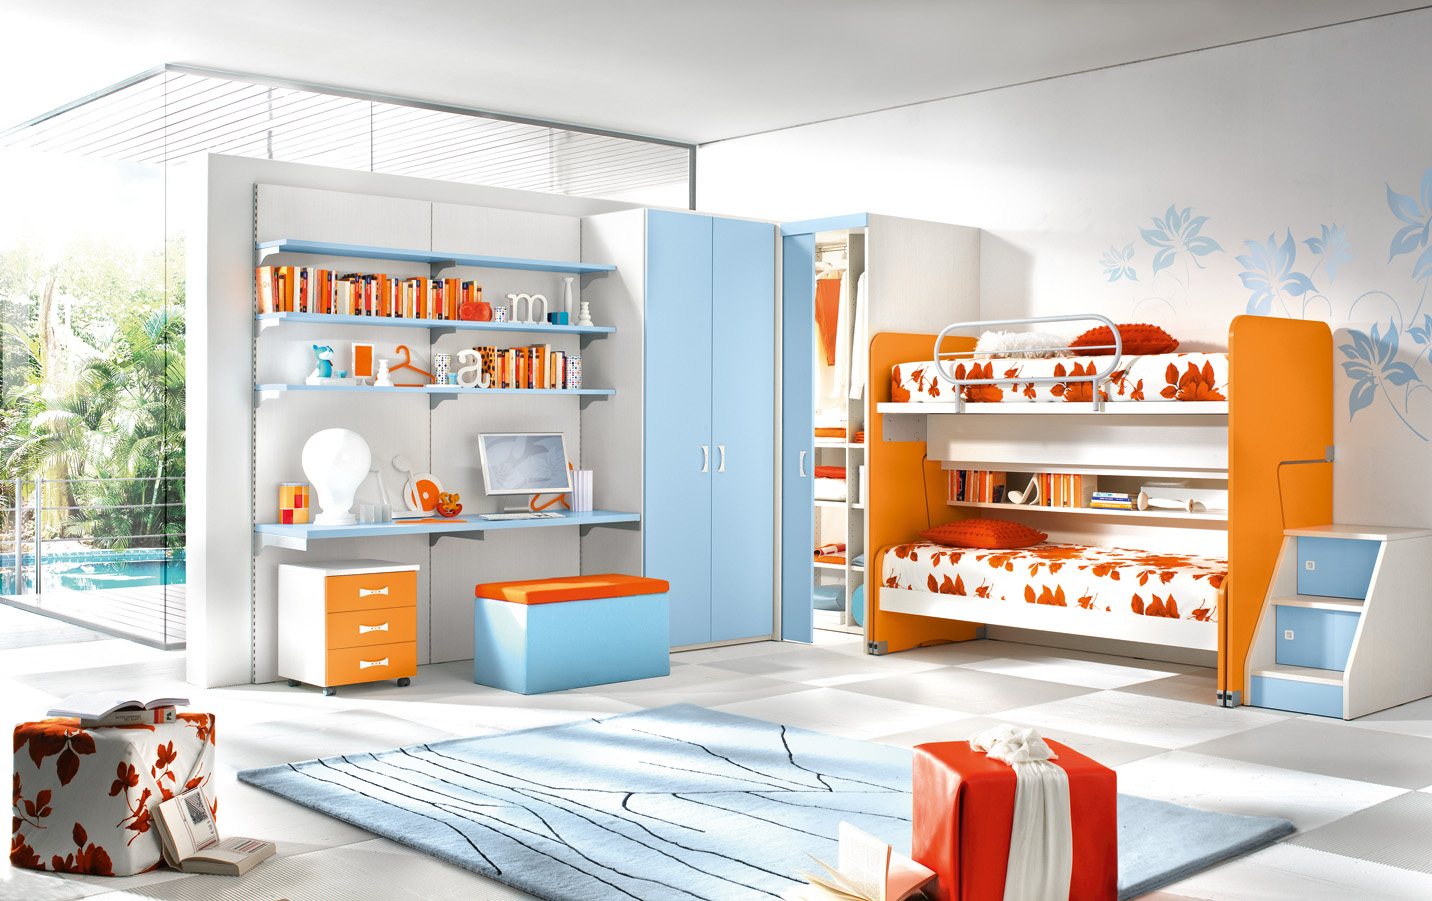 20 contemporary kids room interior design ideas for Kid room decor